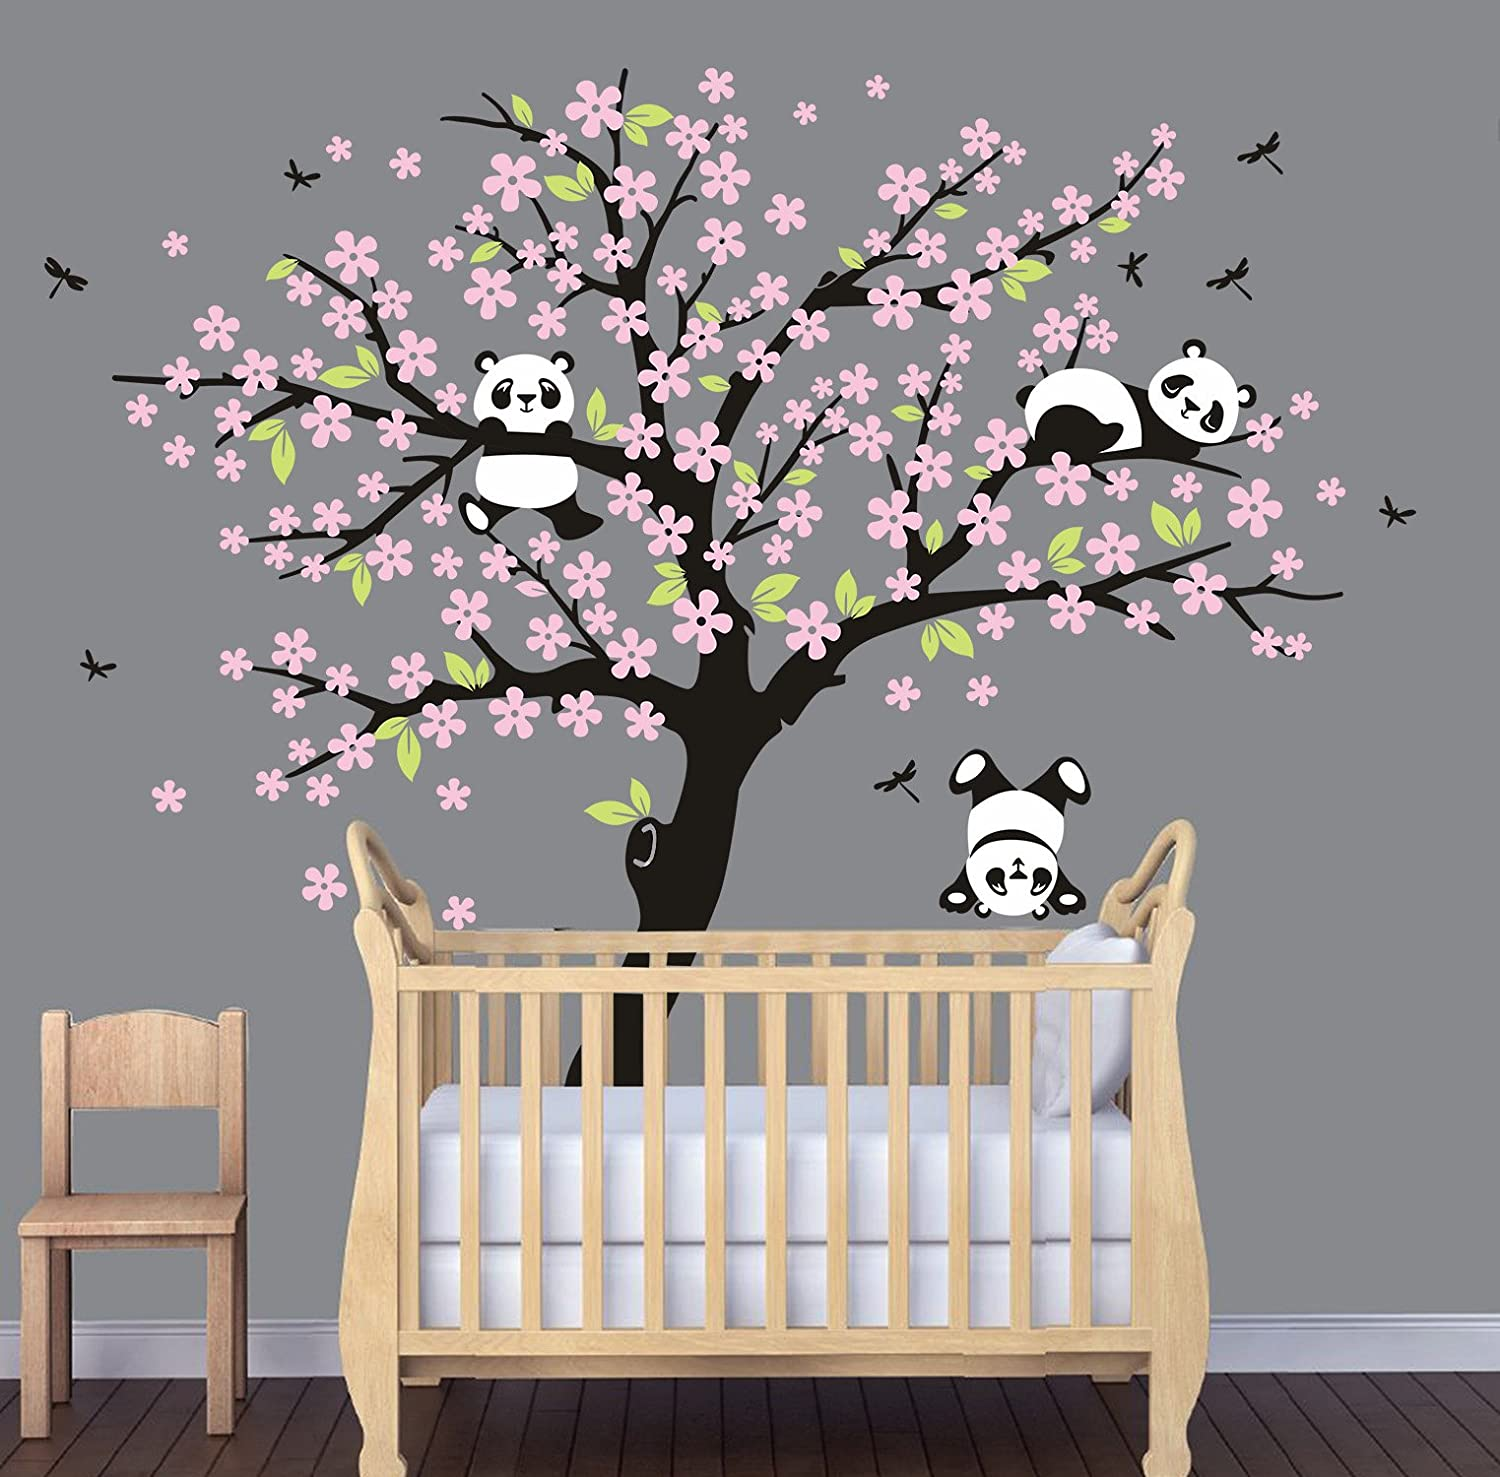 Amazoncom Luckkyy Three Playful Pandas Bear On Cherry Blossom Tree